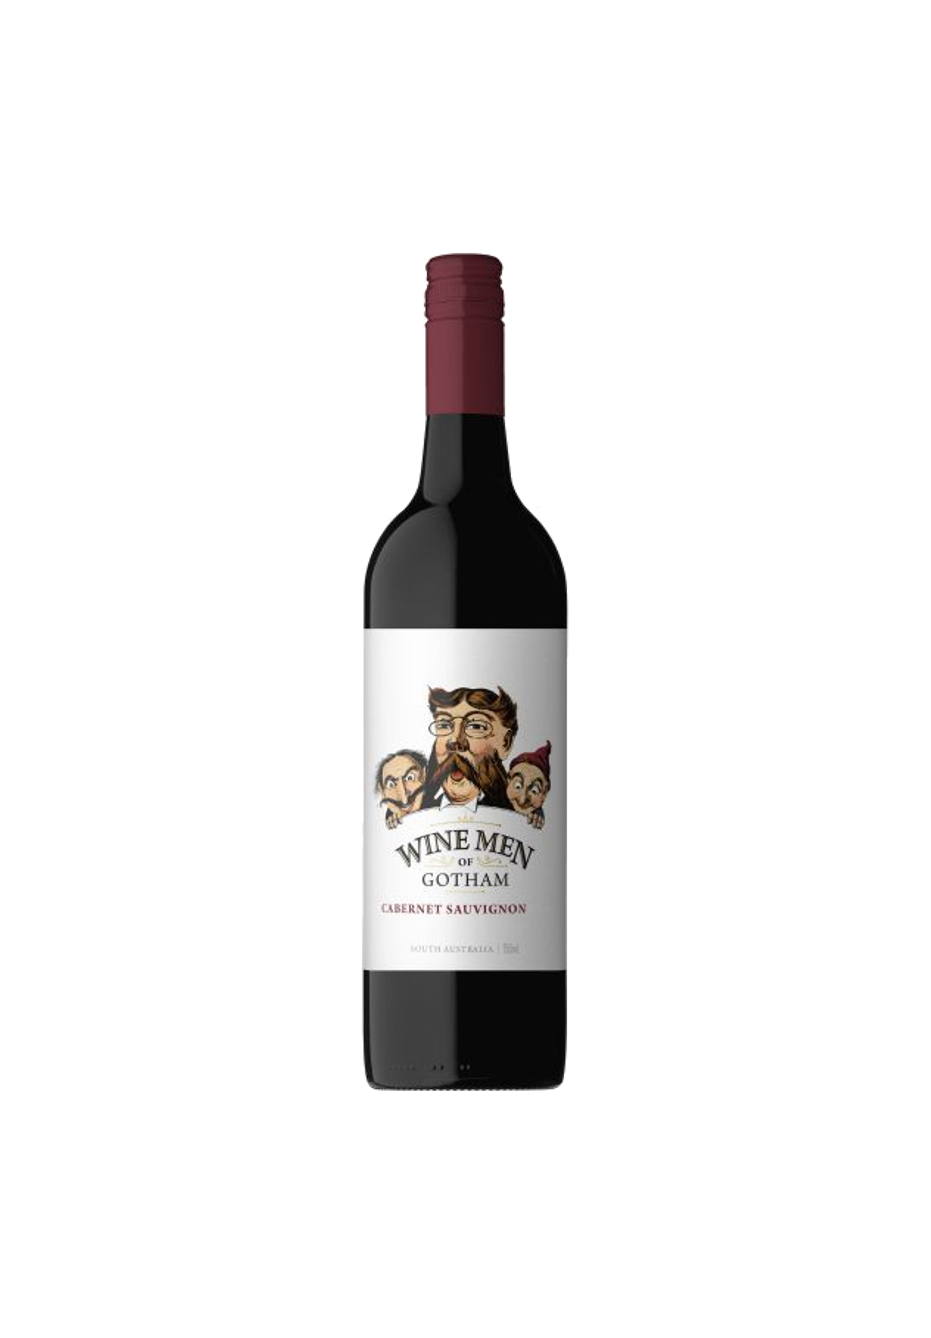 Wine Men Of Gotham South Australian Cabernet Sauvignon 2018